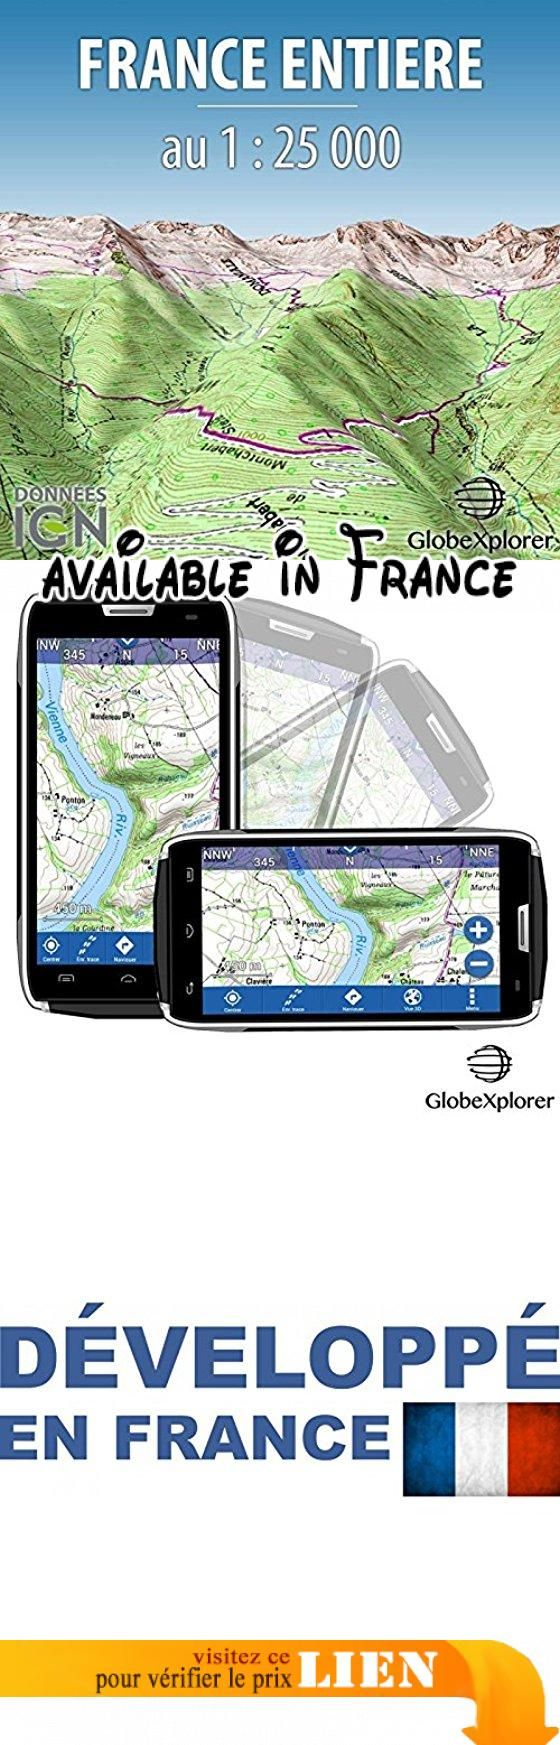 Carte Topographique France entière - Pack France entière - France - 1 : 25 000. GPS carte IGN application navigation #Sports #SPORTING_GOODS